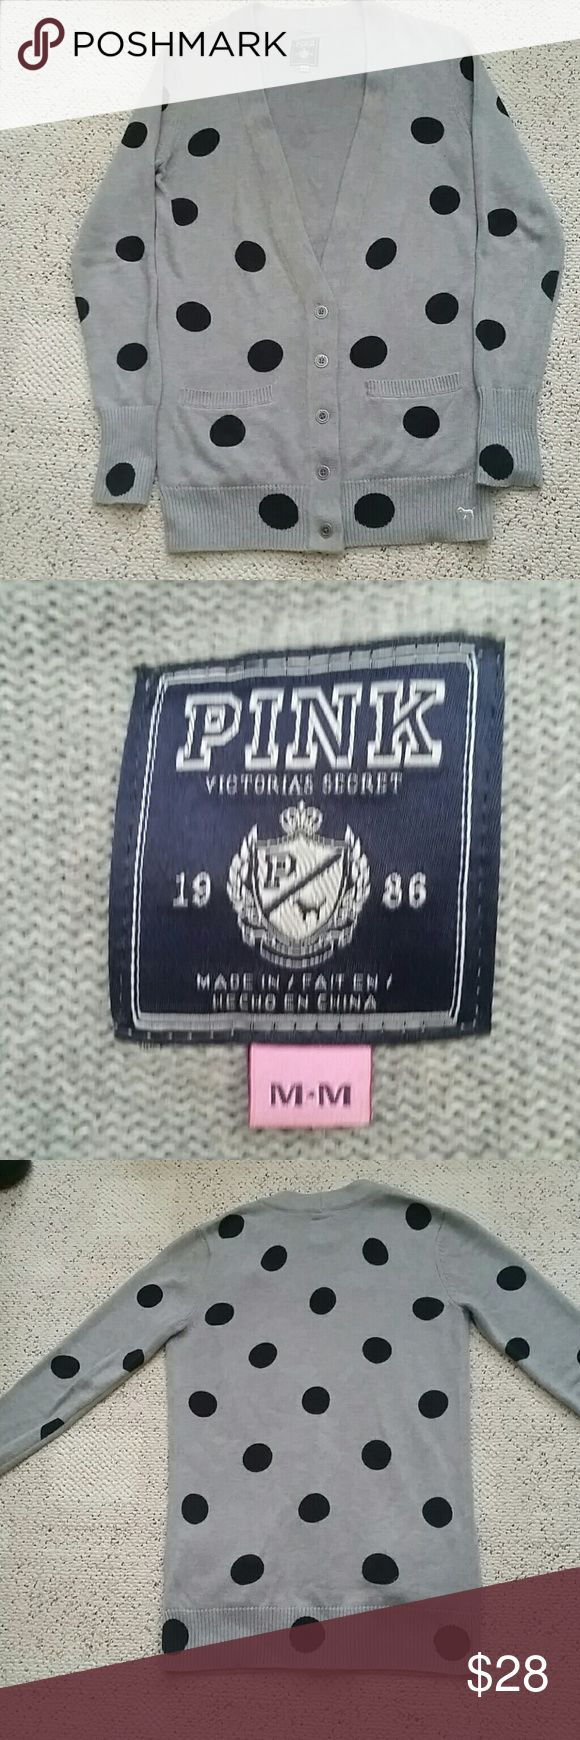 Victoria's Secret PINK cardigan **FINAL MARKDOWN** Like new! Gray/black polka dots sweater. Very warm! Looks great with leggings and boots:) Offers welcome!!! PINK Victoria's Secret Sweaters Cardigans